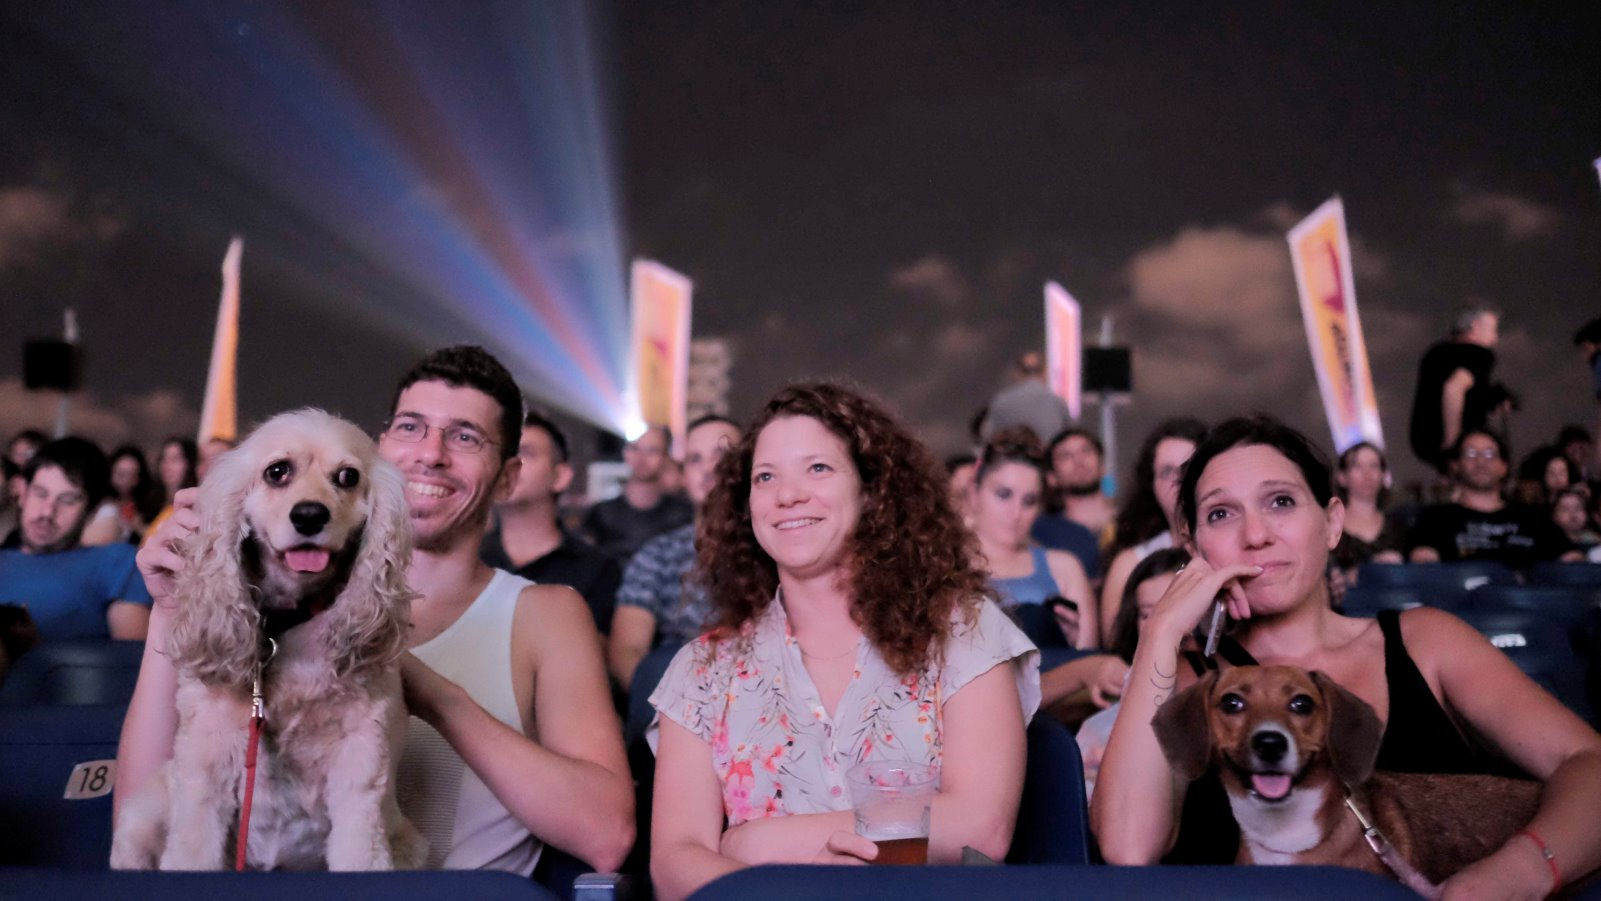 Israelis took their dogs to the movies on a rooftop at the Azrieli Center in Tel-Aviv on July 11, 2016. Photo by Tomer Neuberg/FLASH90